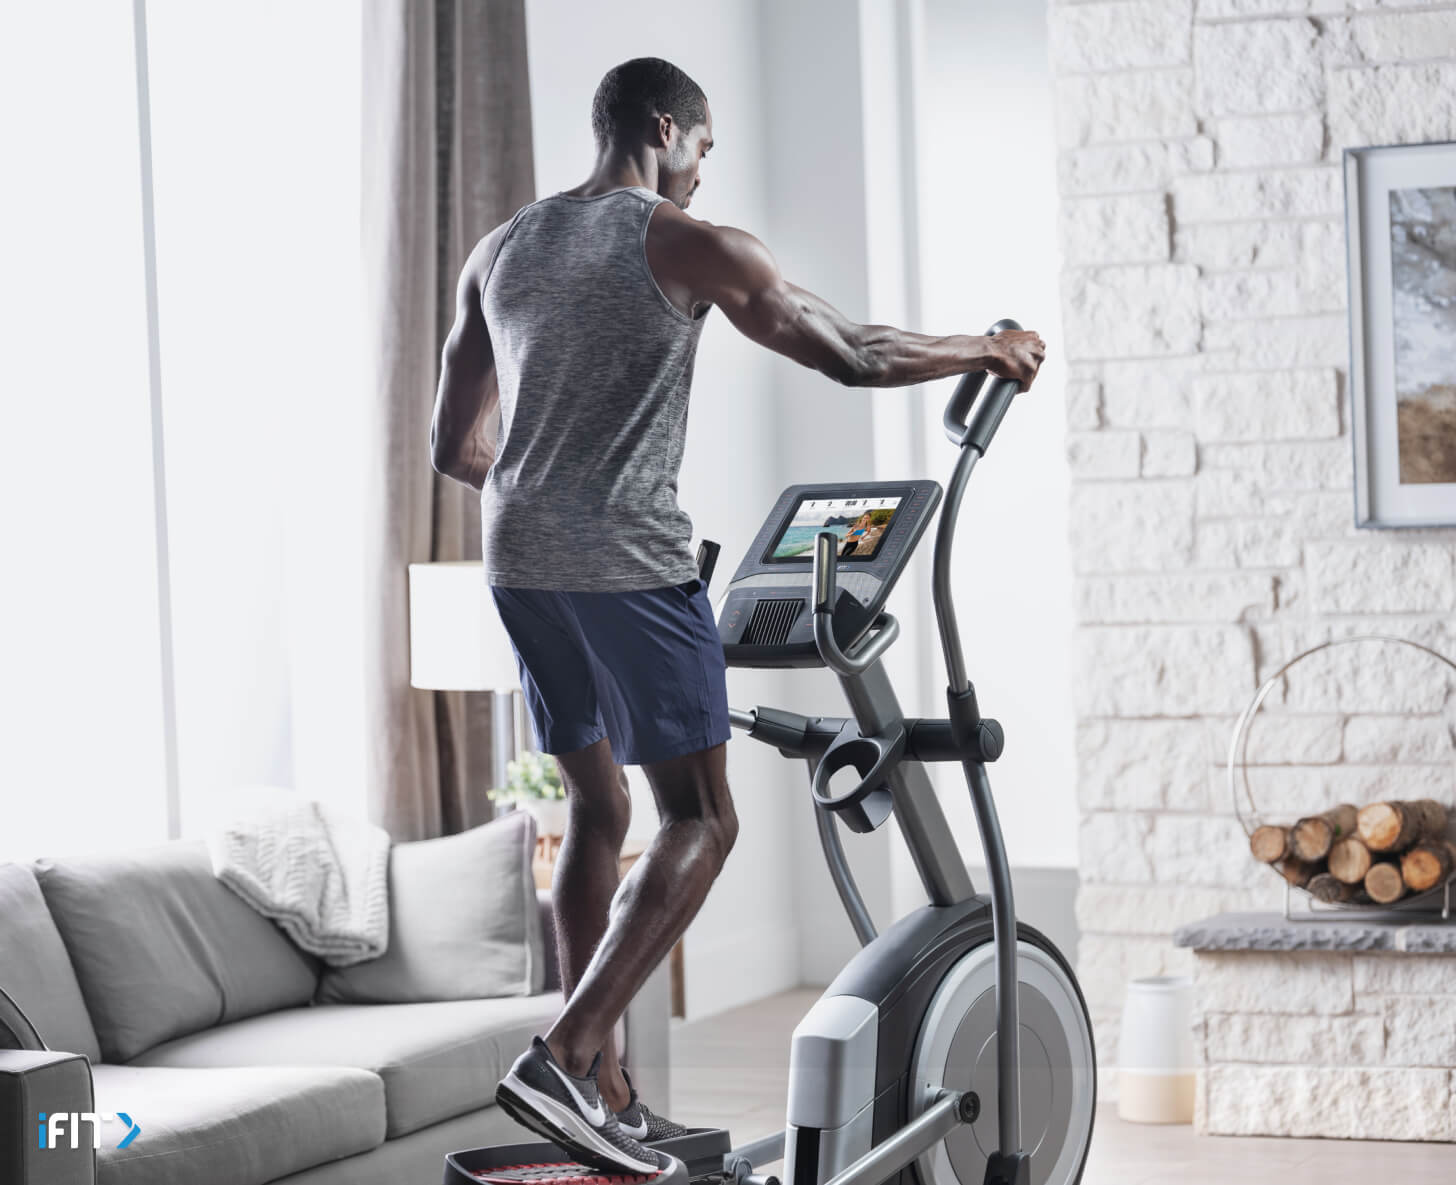 Man works out with iFIT elliptical exercises